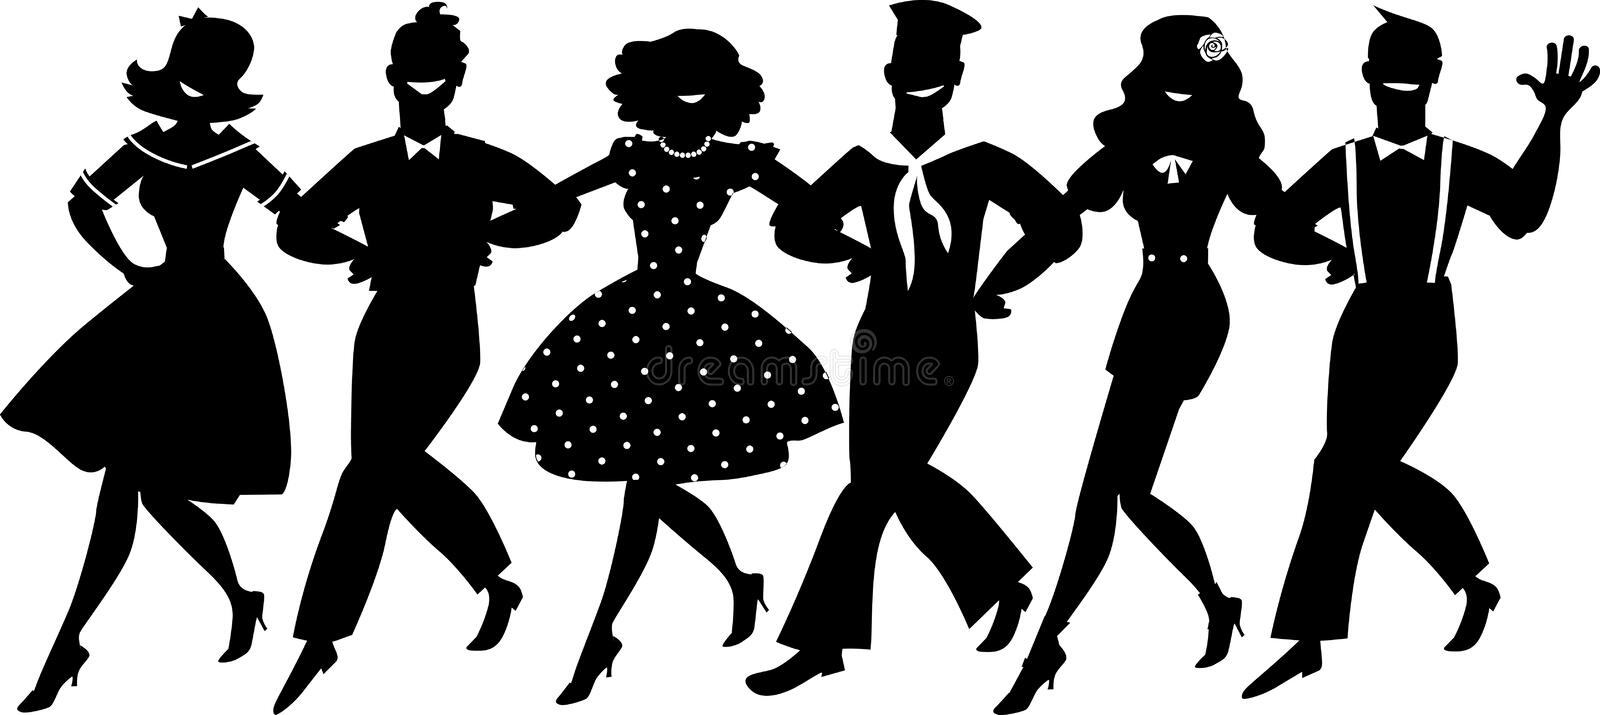 Broadway chorus line silhouette. A chorus line of male and female performers dressed in vintage fashion dancing a routine in a classic musical theater, EPS 8 royalty free illustration